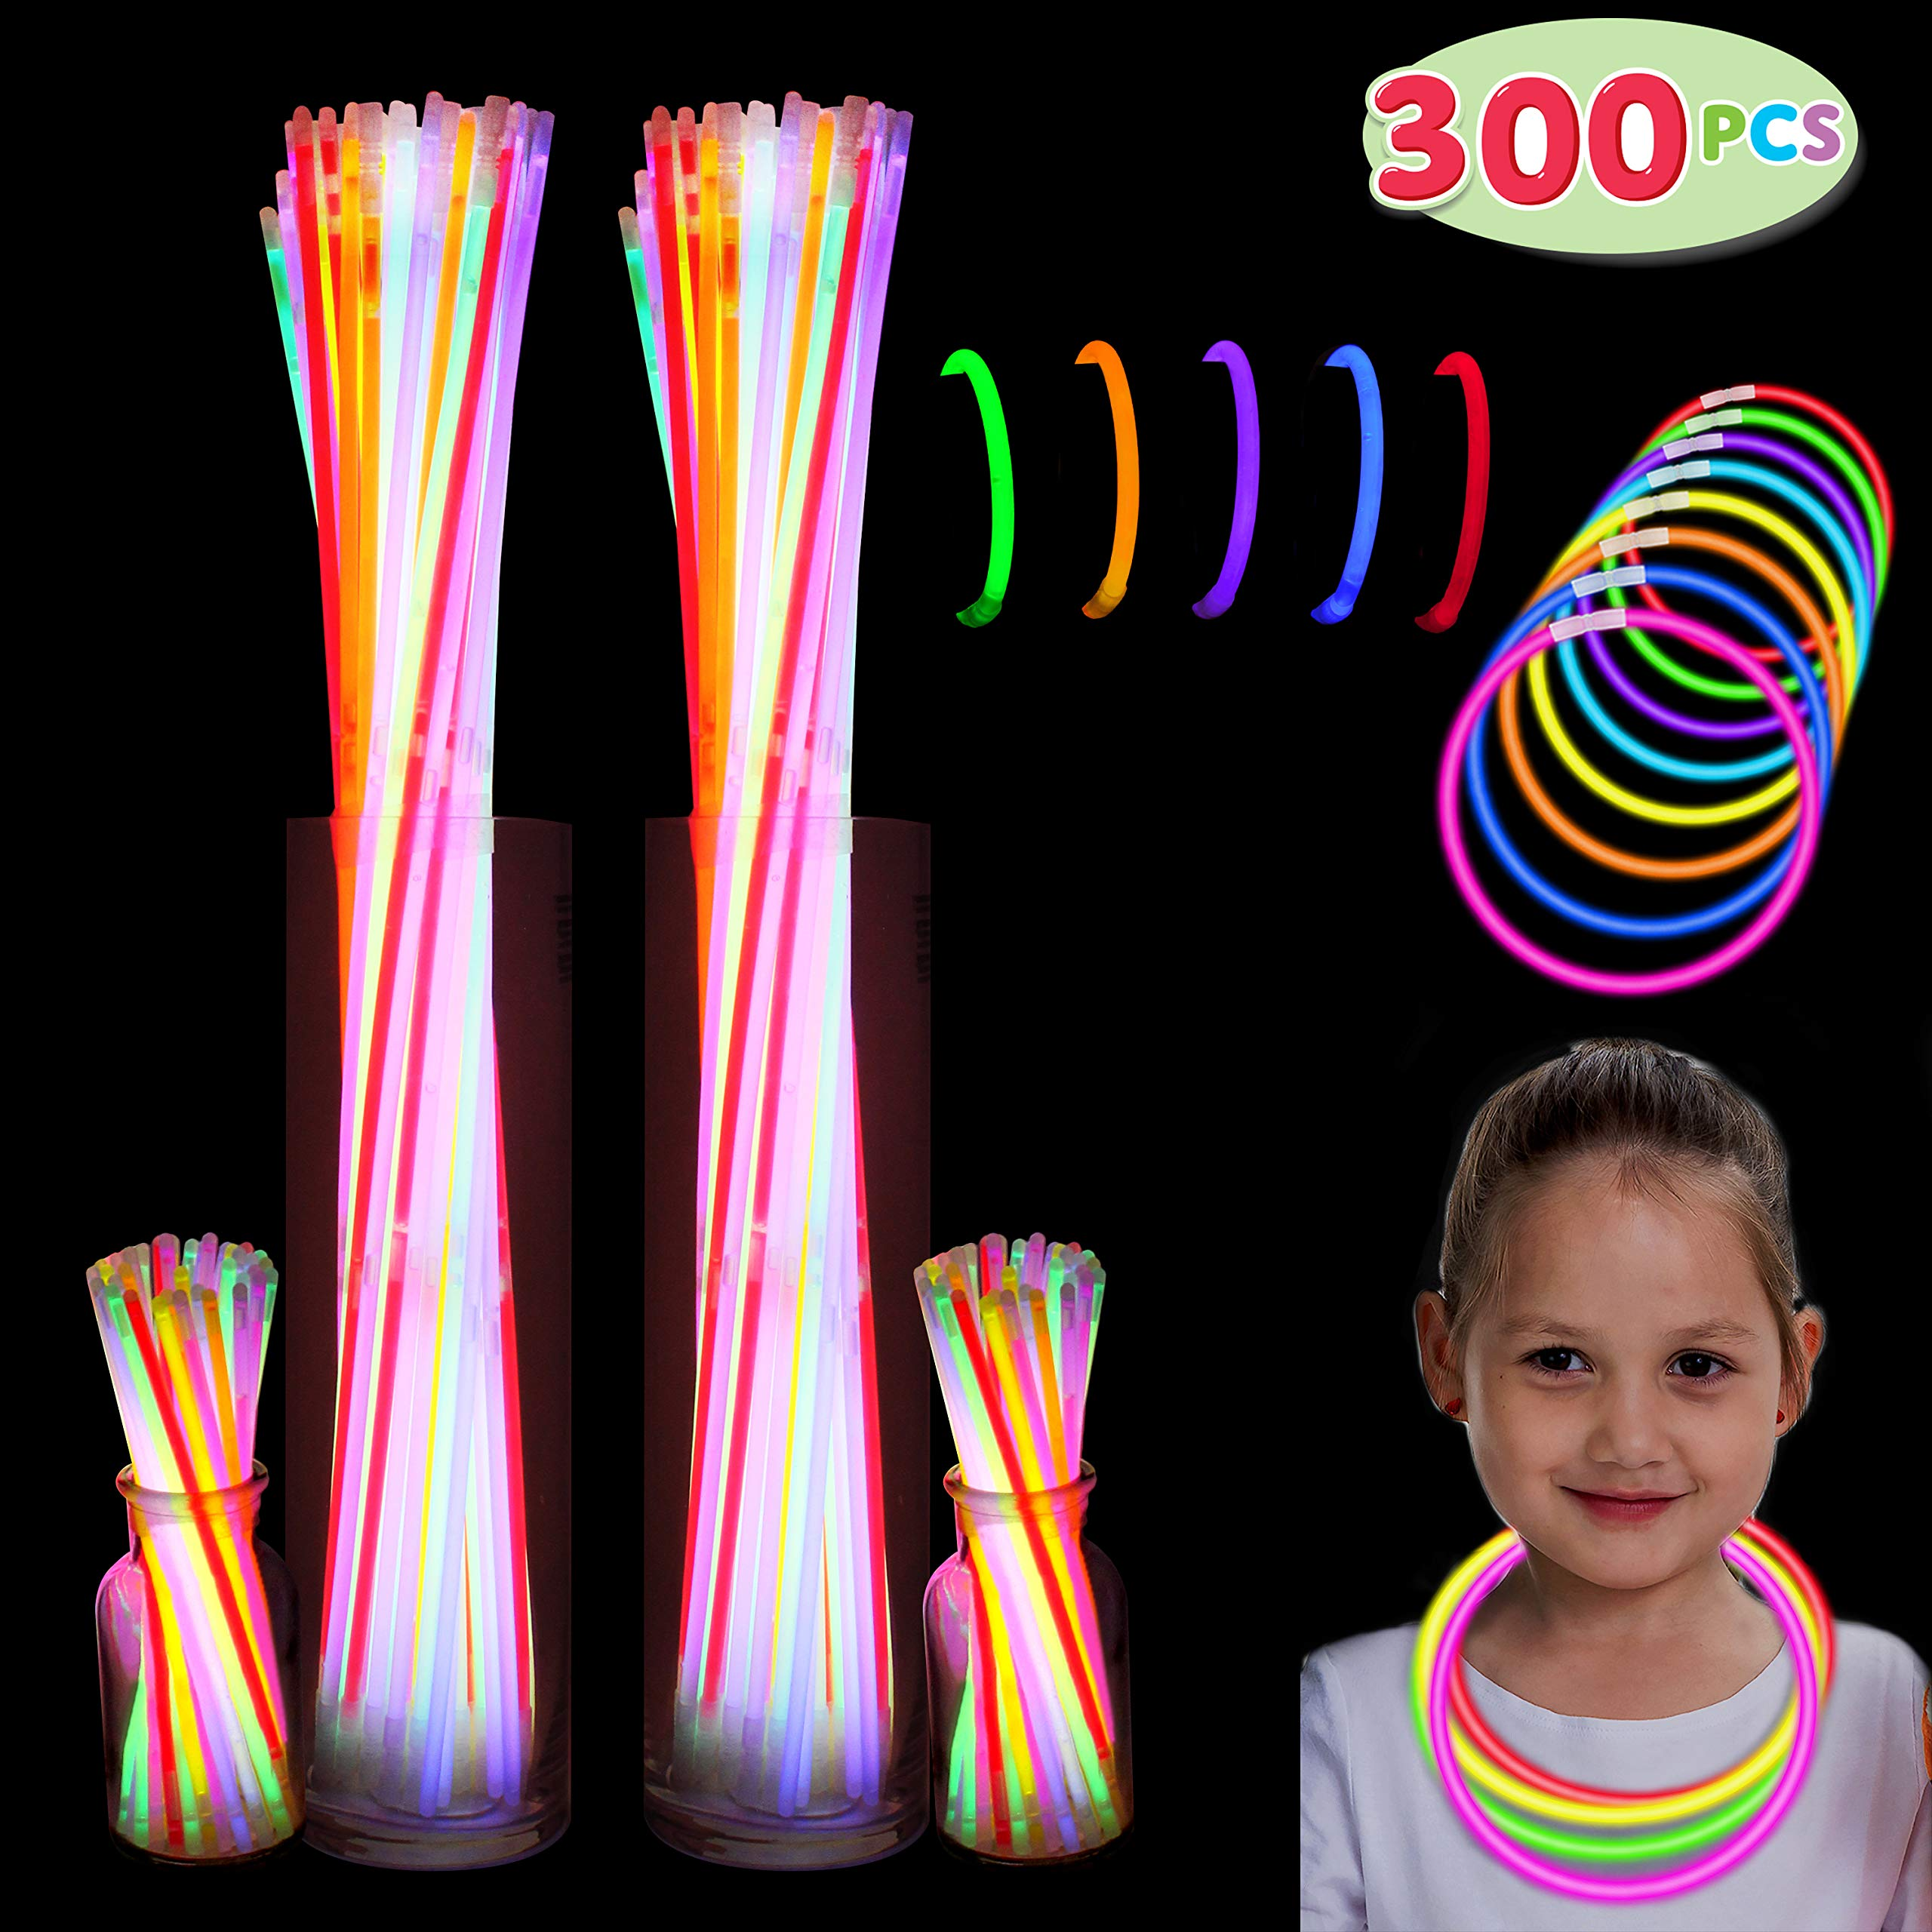 300 Pack Glow Sticks with 100 22'' Necklaces + 200 8'' Bracelets; Connector Included; Glowstick Bundle Party Favors, Glow in the Dark Party Bulk Supplies, Neon Light Up Accessories for Kids and Adults.